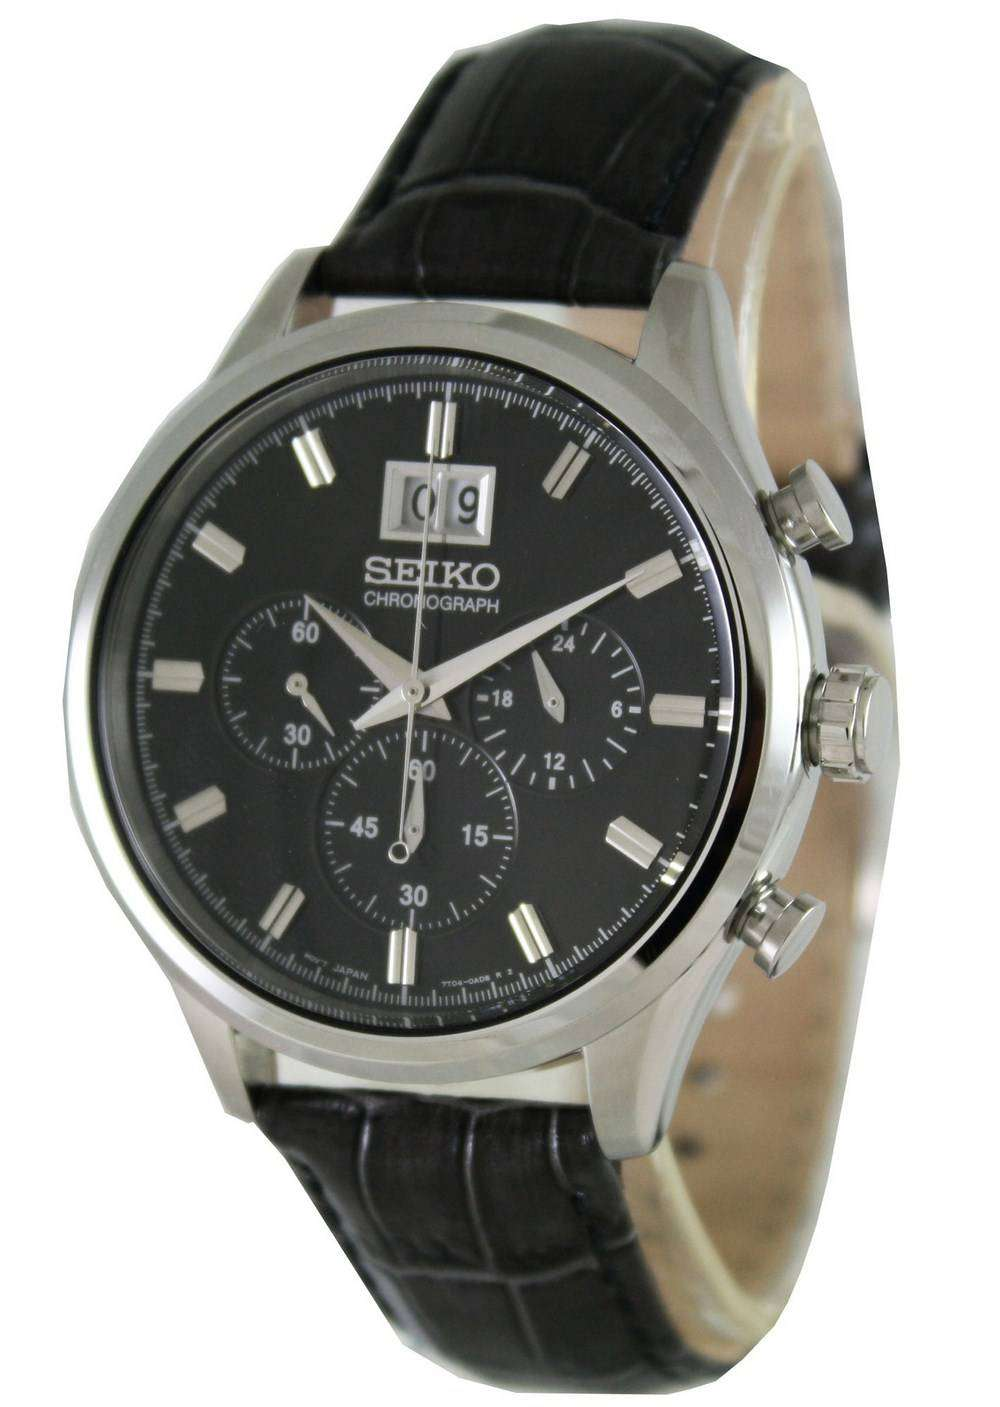 Seiko Chronograph SPC083P2 Men's Watch - DownUnderWatches